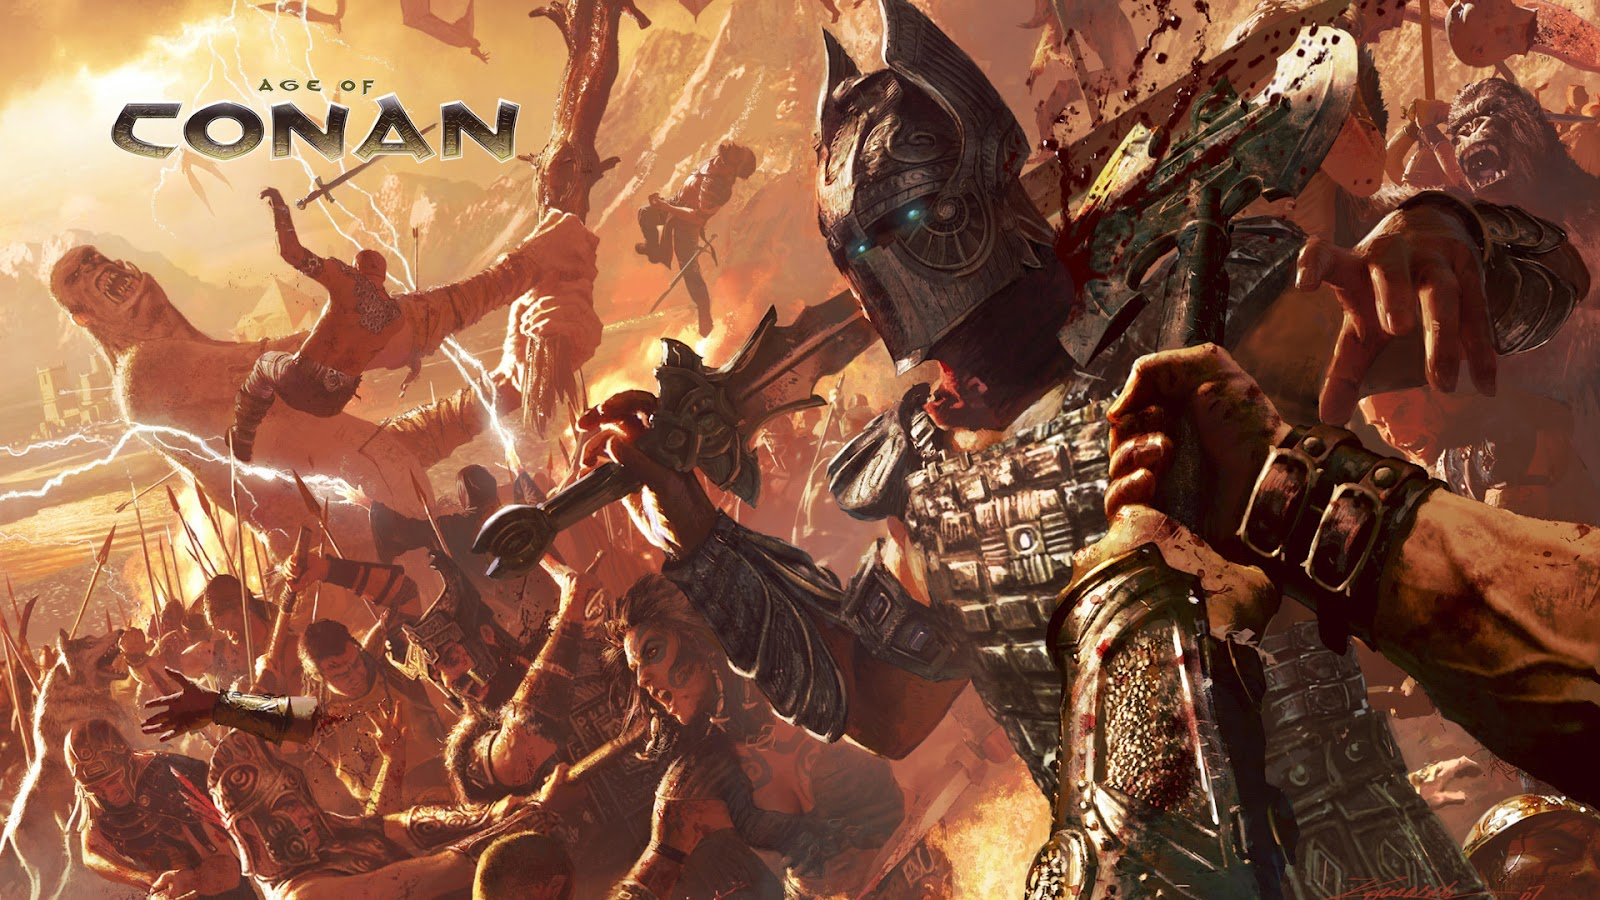 AgeofConanwallpapers6 Age of Conan Wallpapers in HD with 1920x1080 1600x900